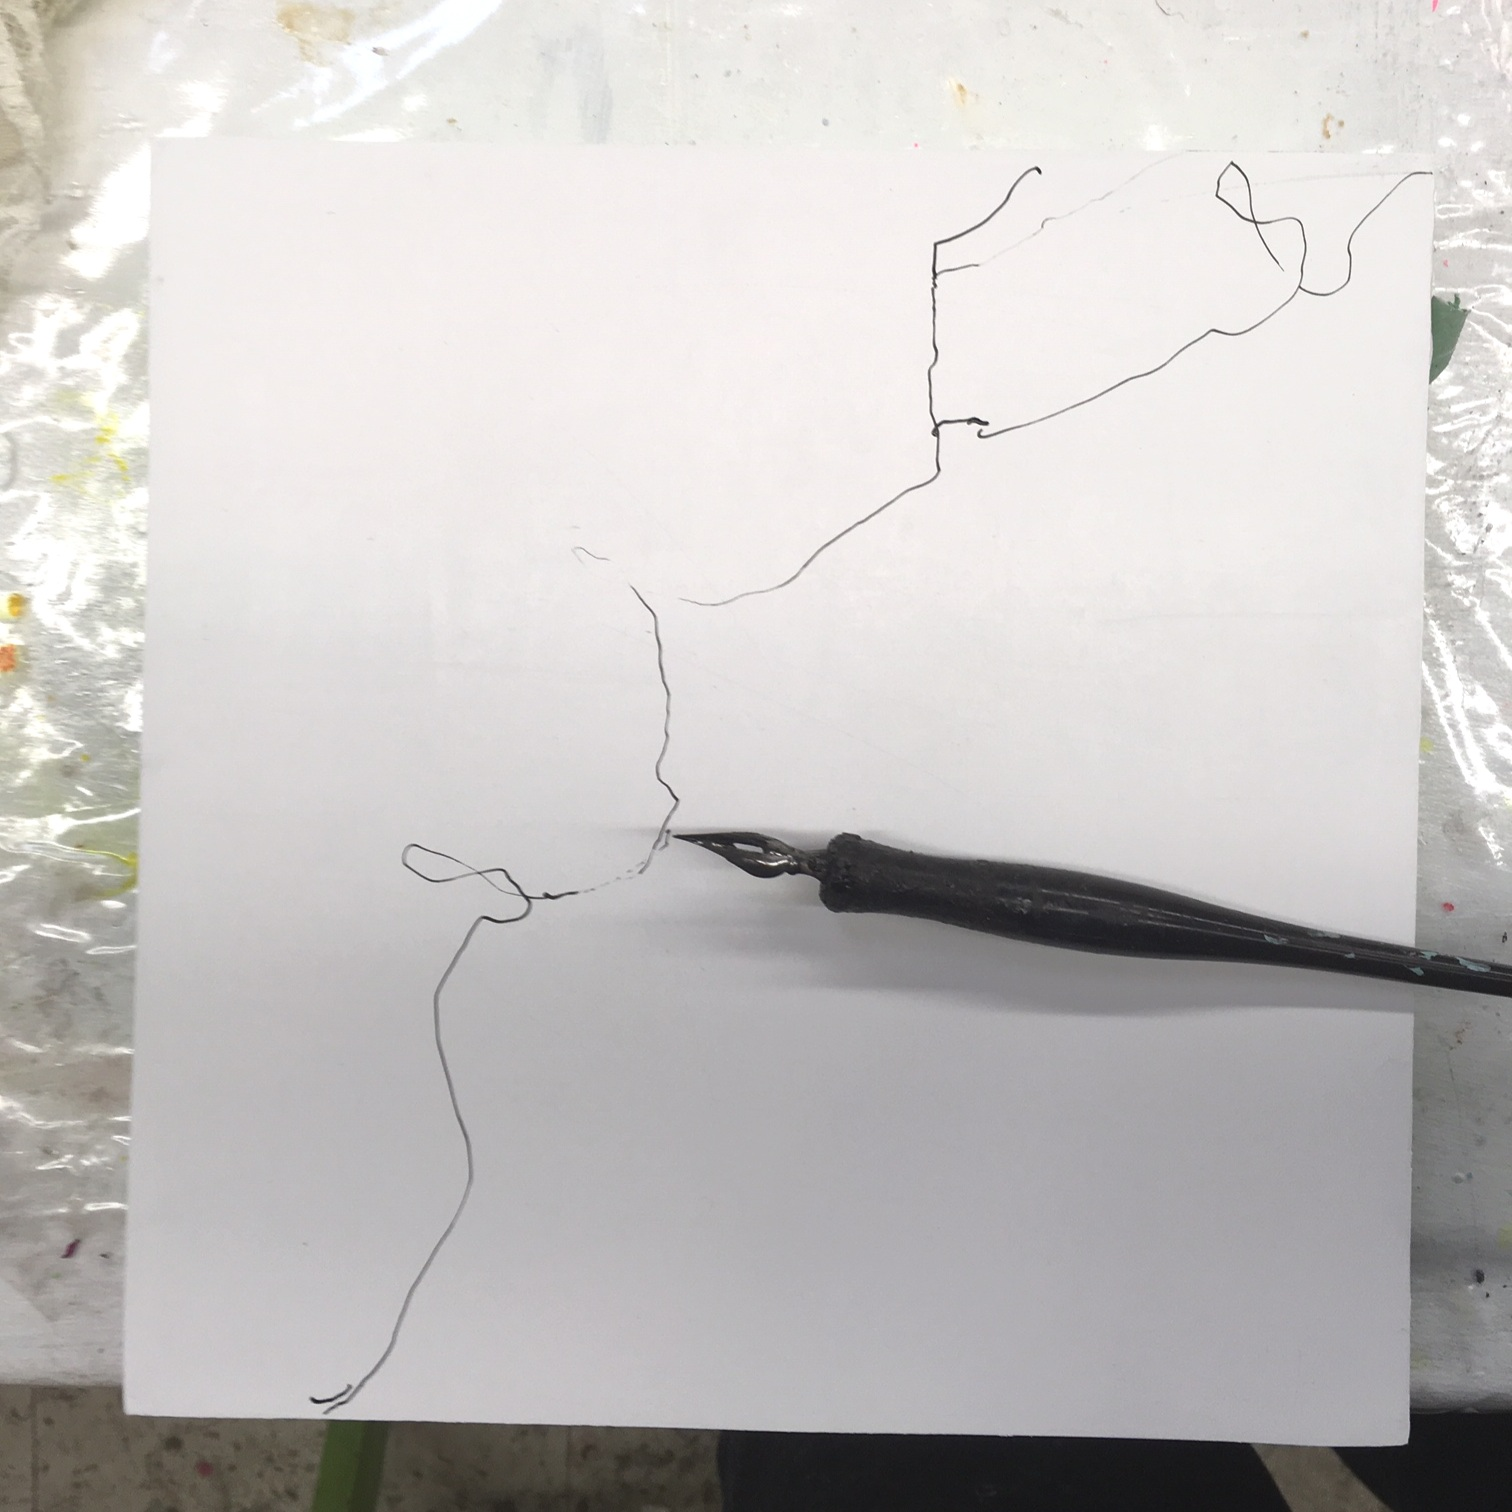 My rough outline looks more like an electrocuted worm.